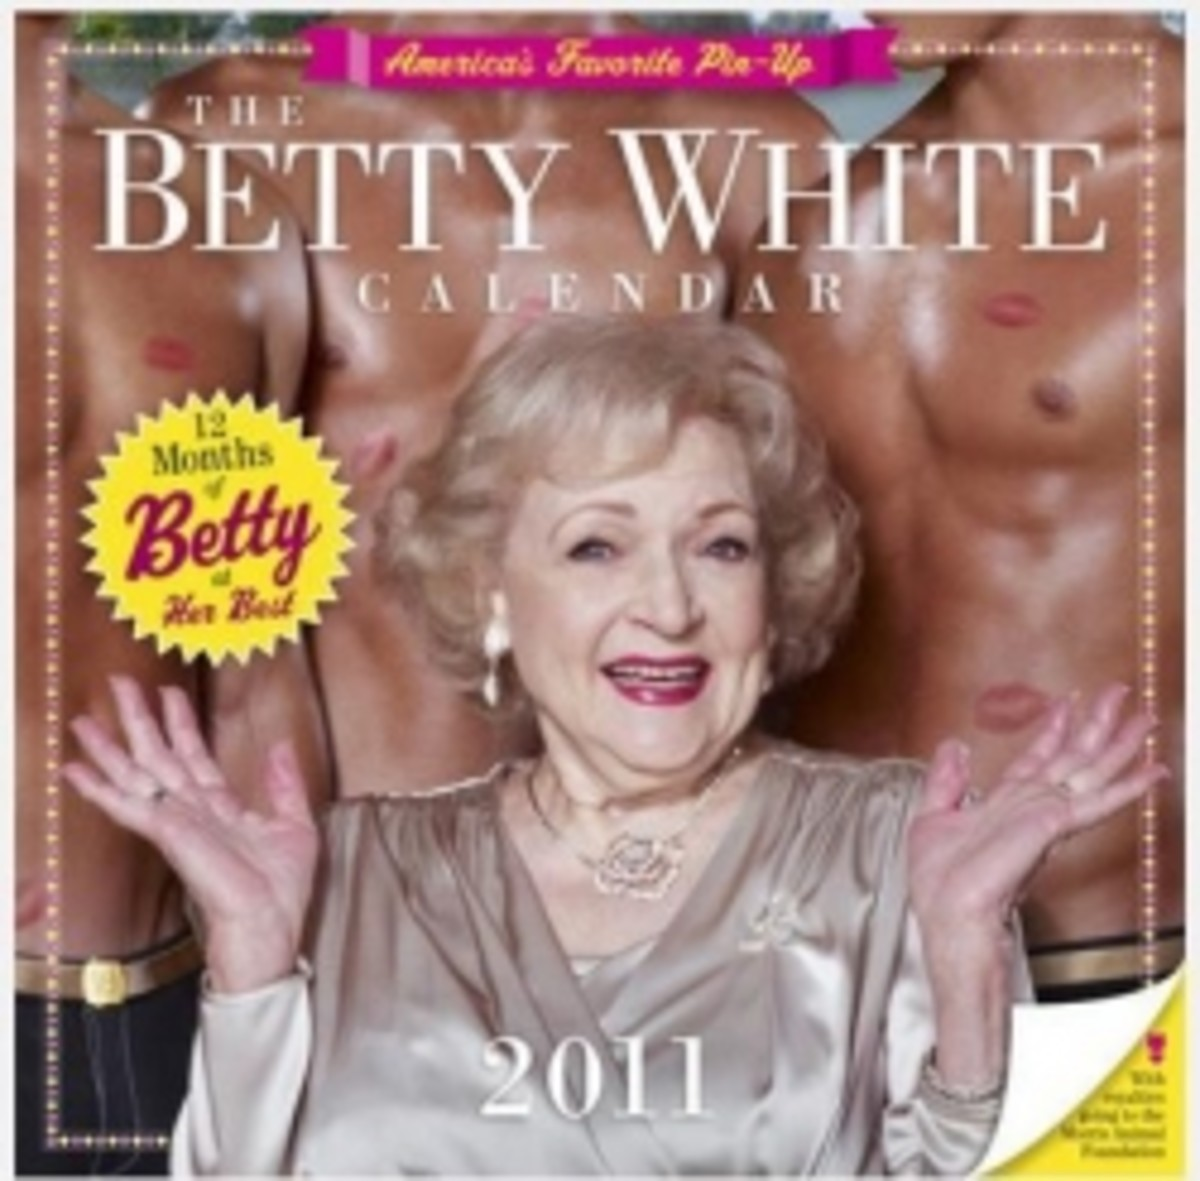 Betty White Calendar: A Must-Have for Betty White Fans!